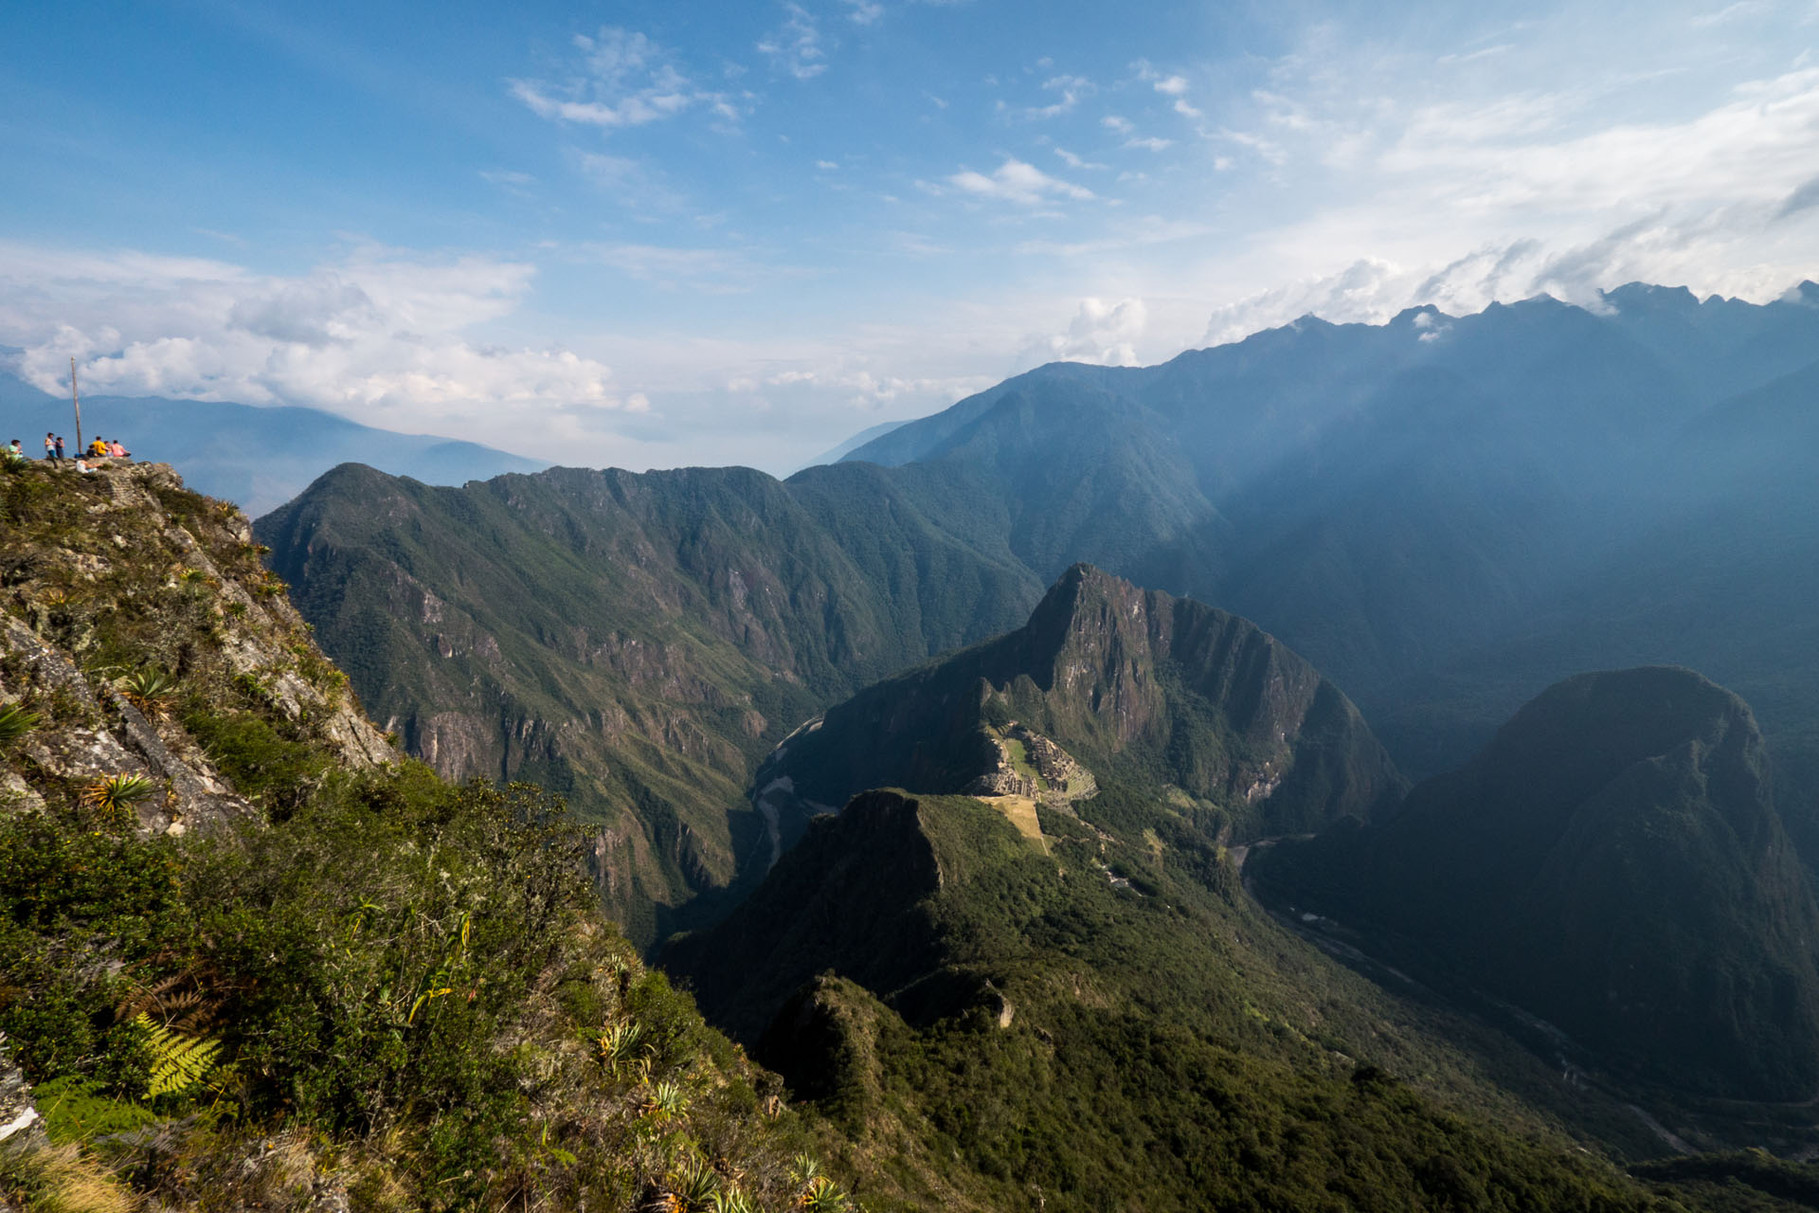 Machu Picchu (2400 masl), seen from Machu Picchu Mountain (3100 masl)